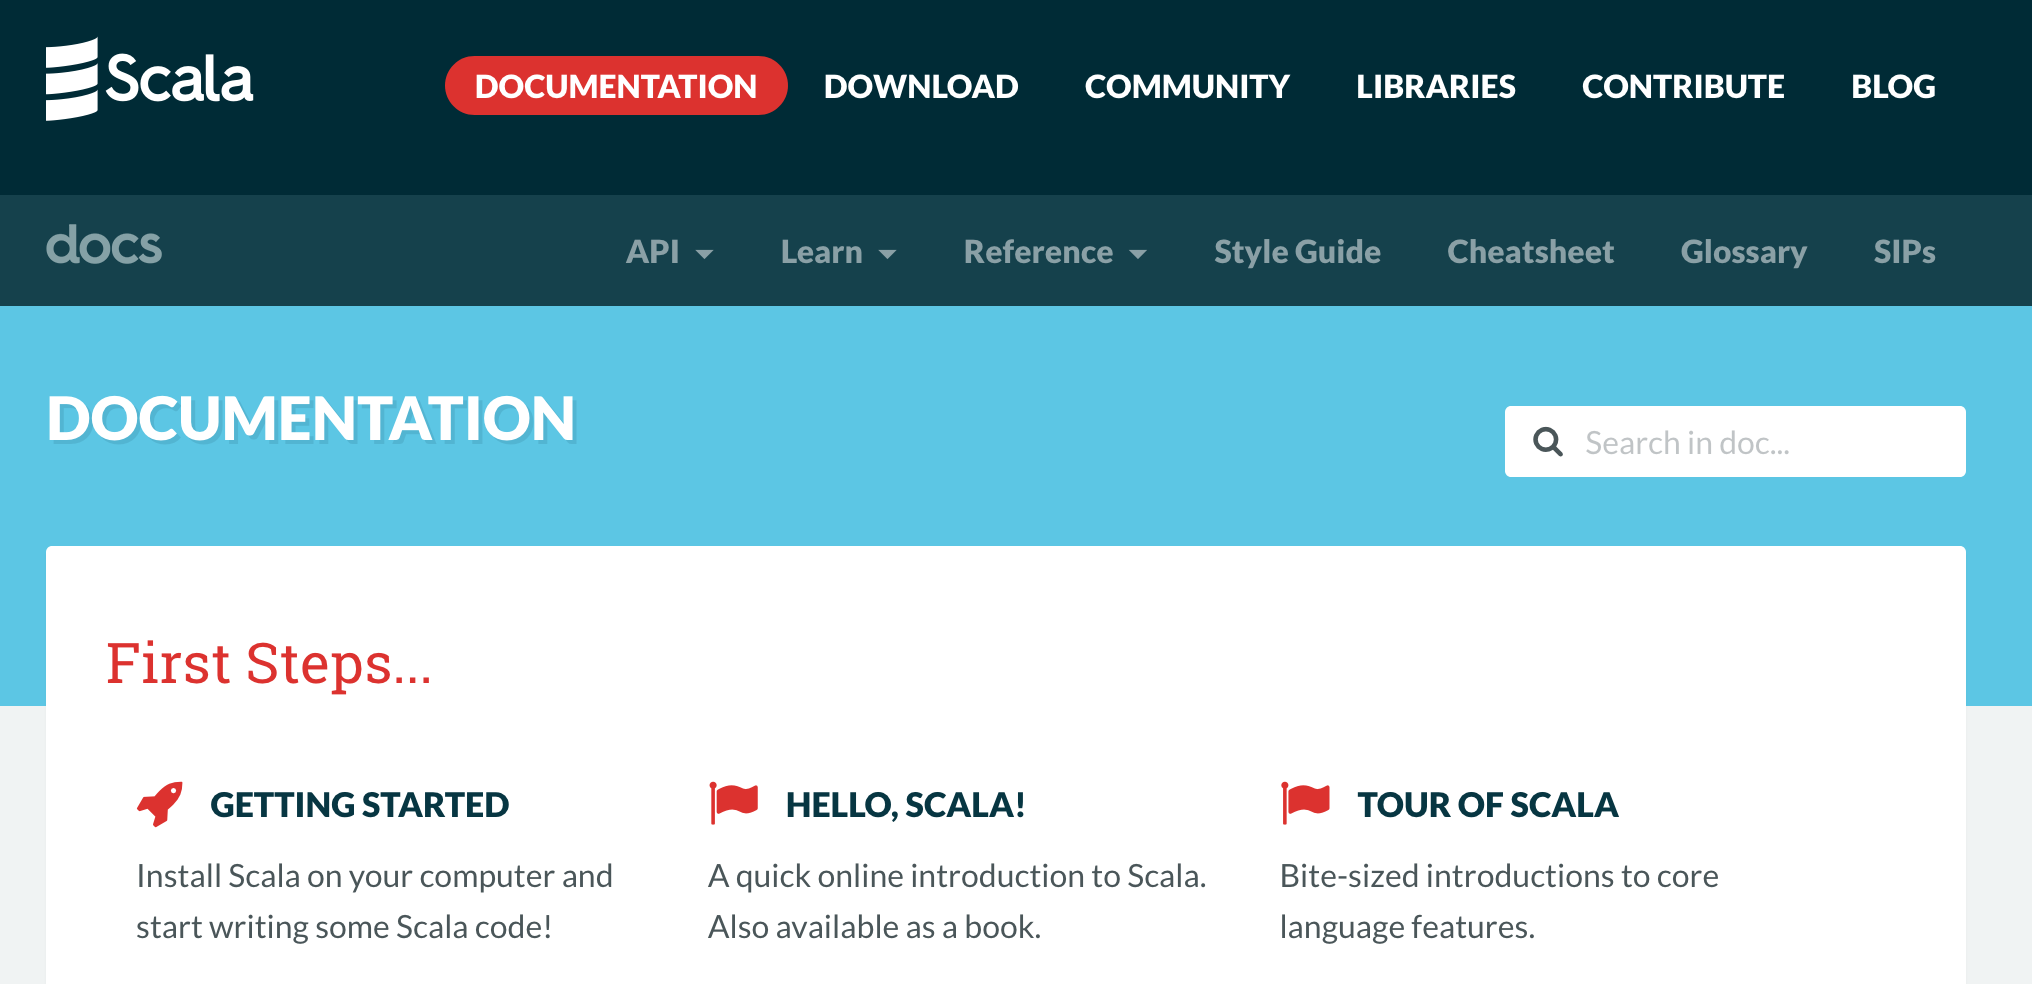 What can make scala more popular? - Community - Scala